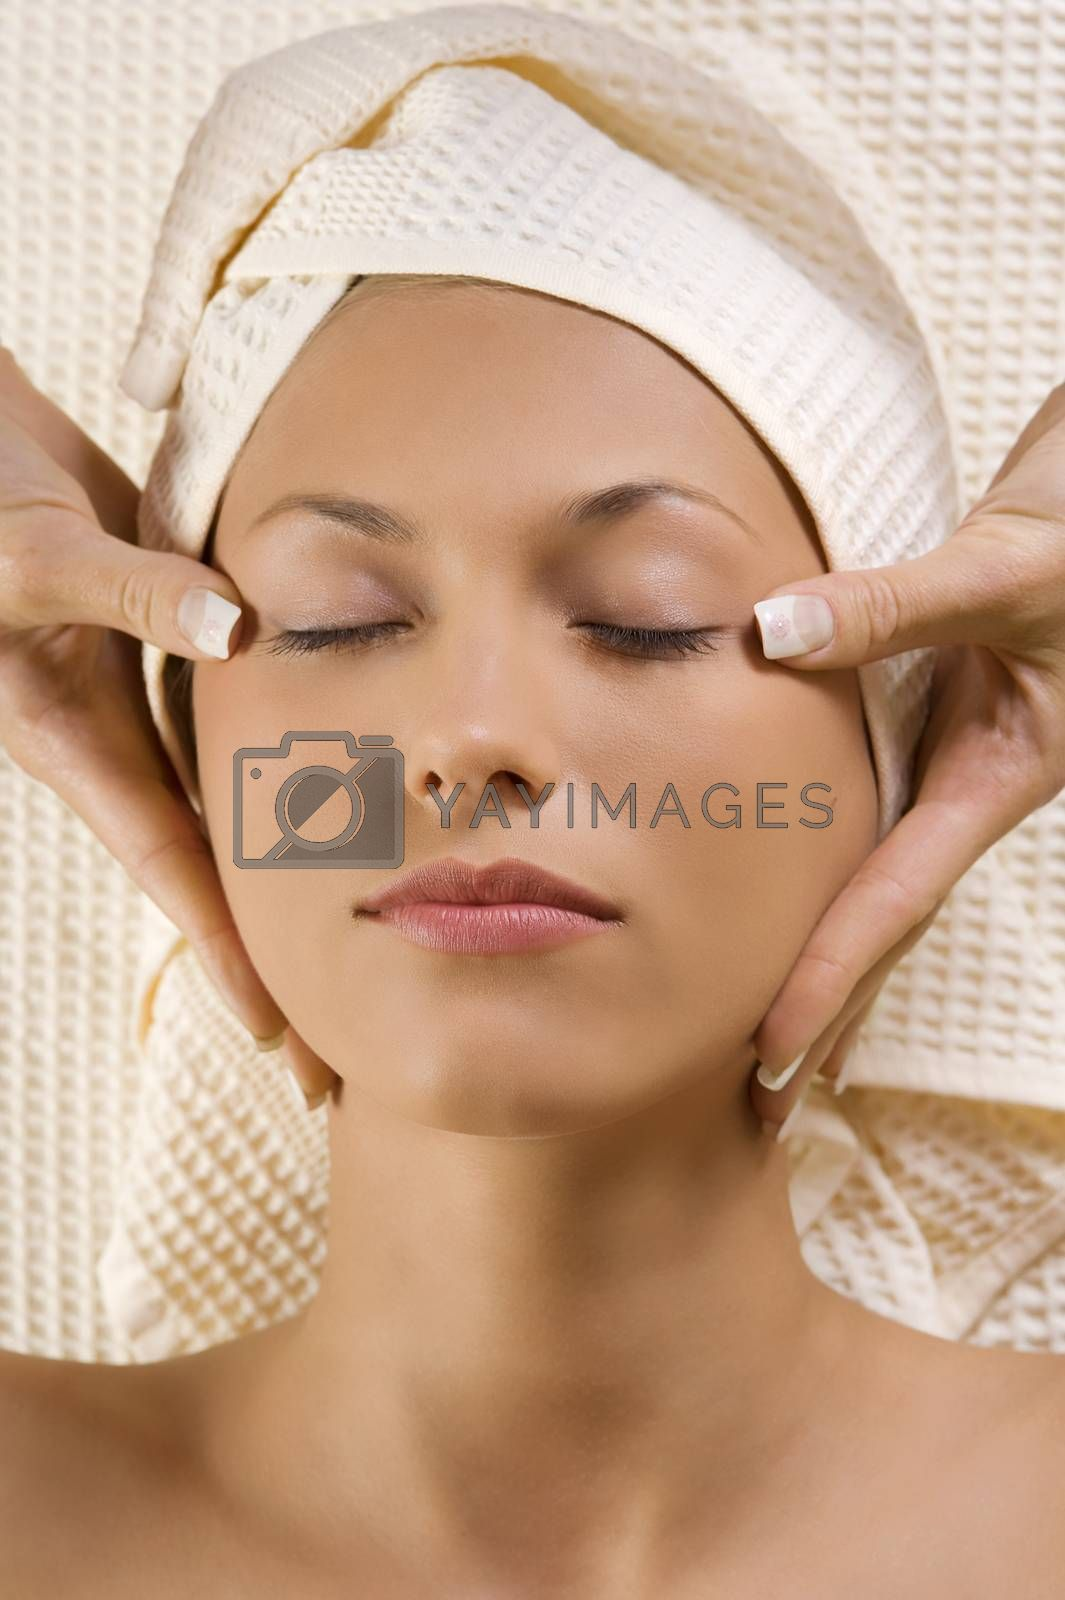 Royalty free image of hands massage on head temple by fotoCD